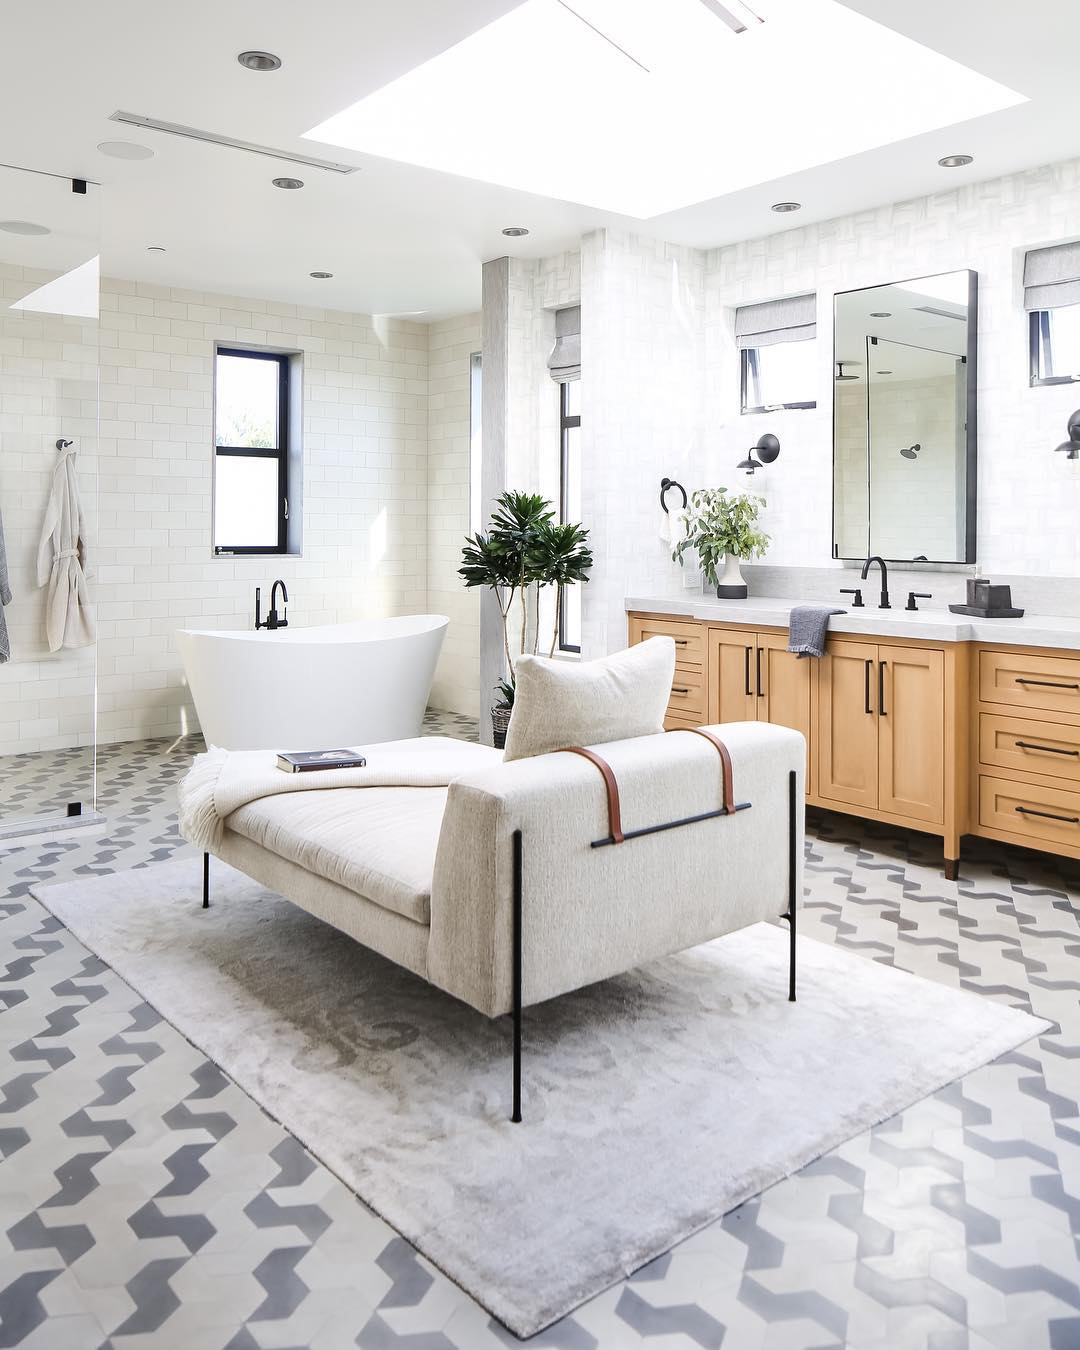 Chaise Lounge in the bathroom @brookewagnerdesign